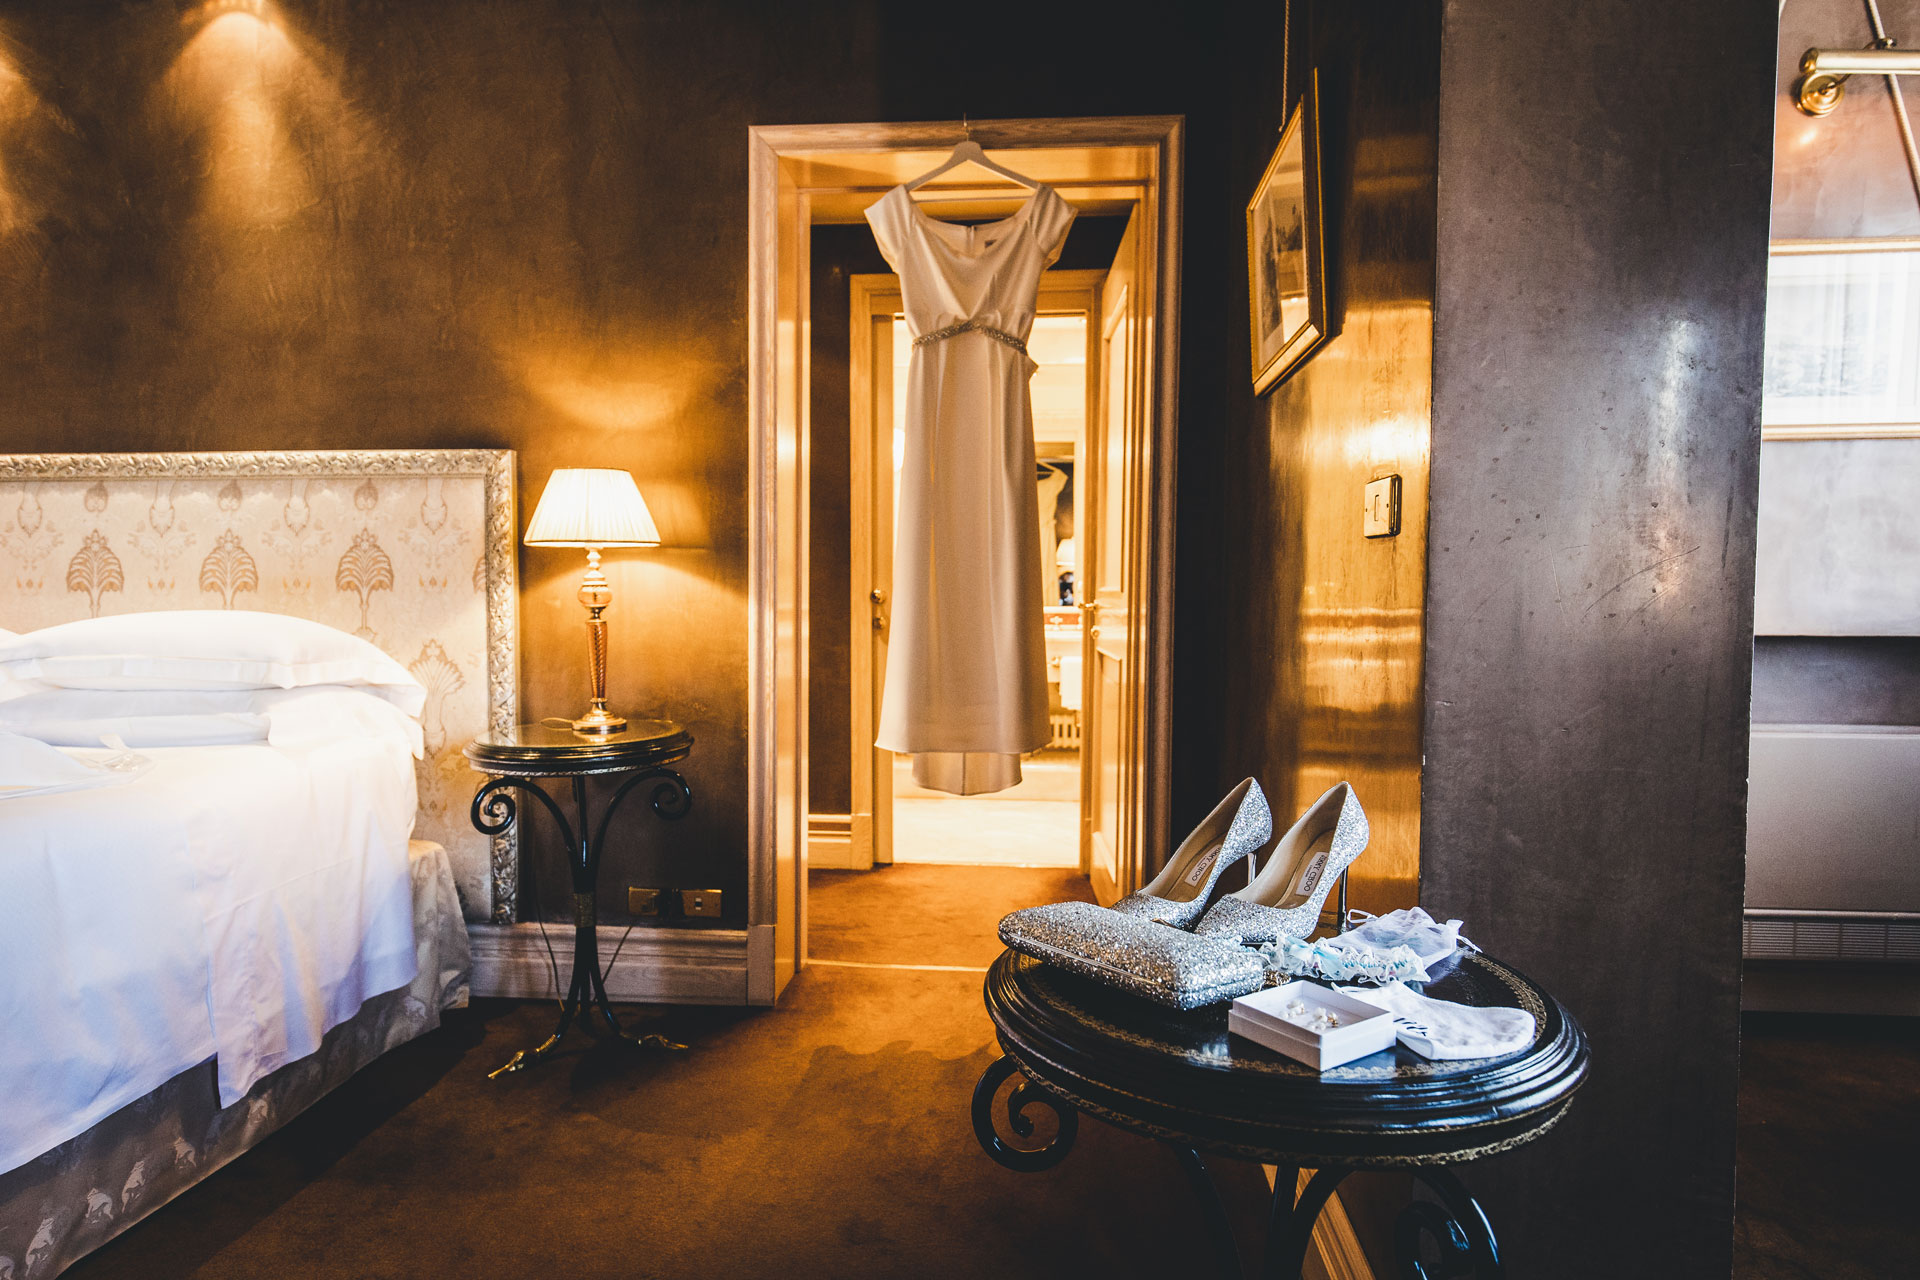 Elegant Wedding Photography from Hotel Bauer | the timeless and elegant wedding gown hanging in the doorway